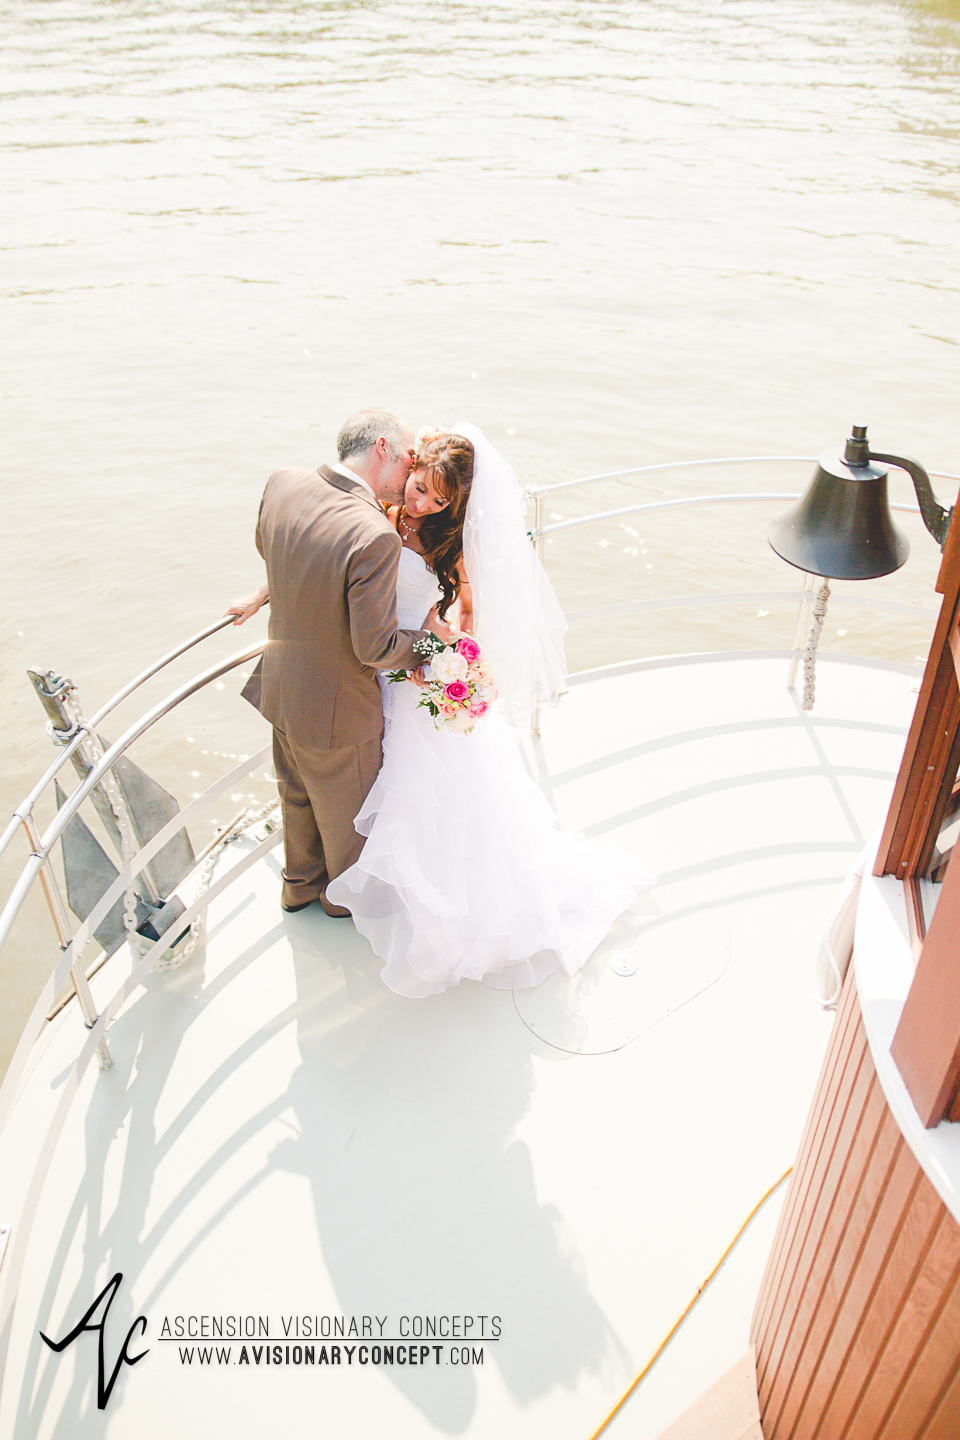 Buffalo Wedding Photography Lockport Locks Wedding 23 - Lockview V Boat Bride and Groom Newlyweds.jpg